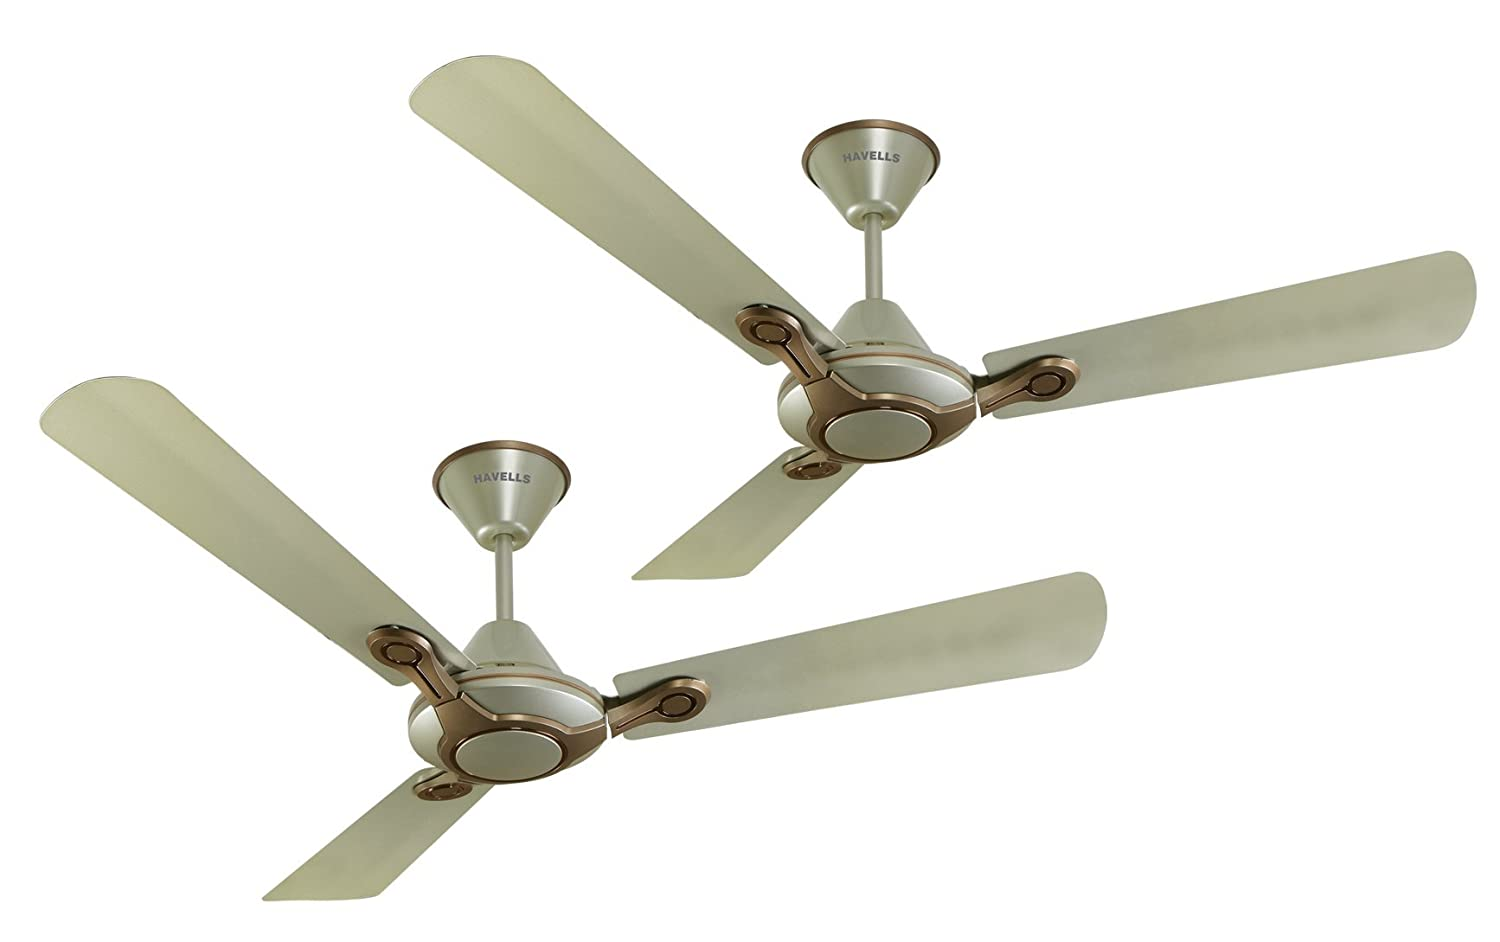 Havells Leganza 3B 1200mm Ceiling Fan Bronze Gold Pack of 2